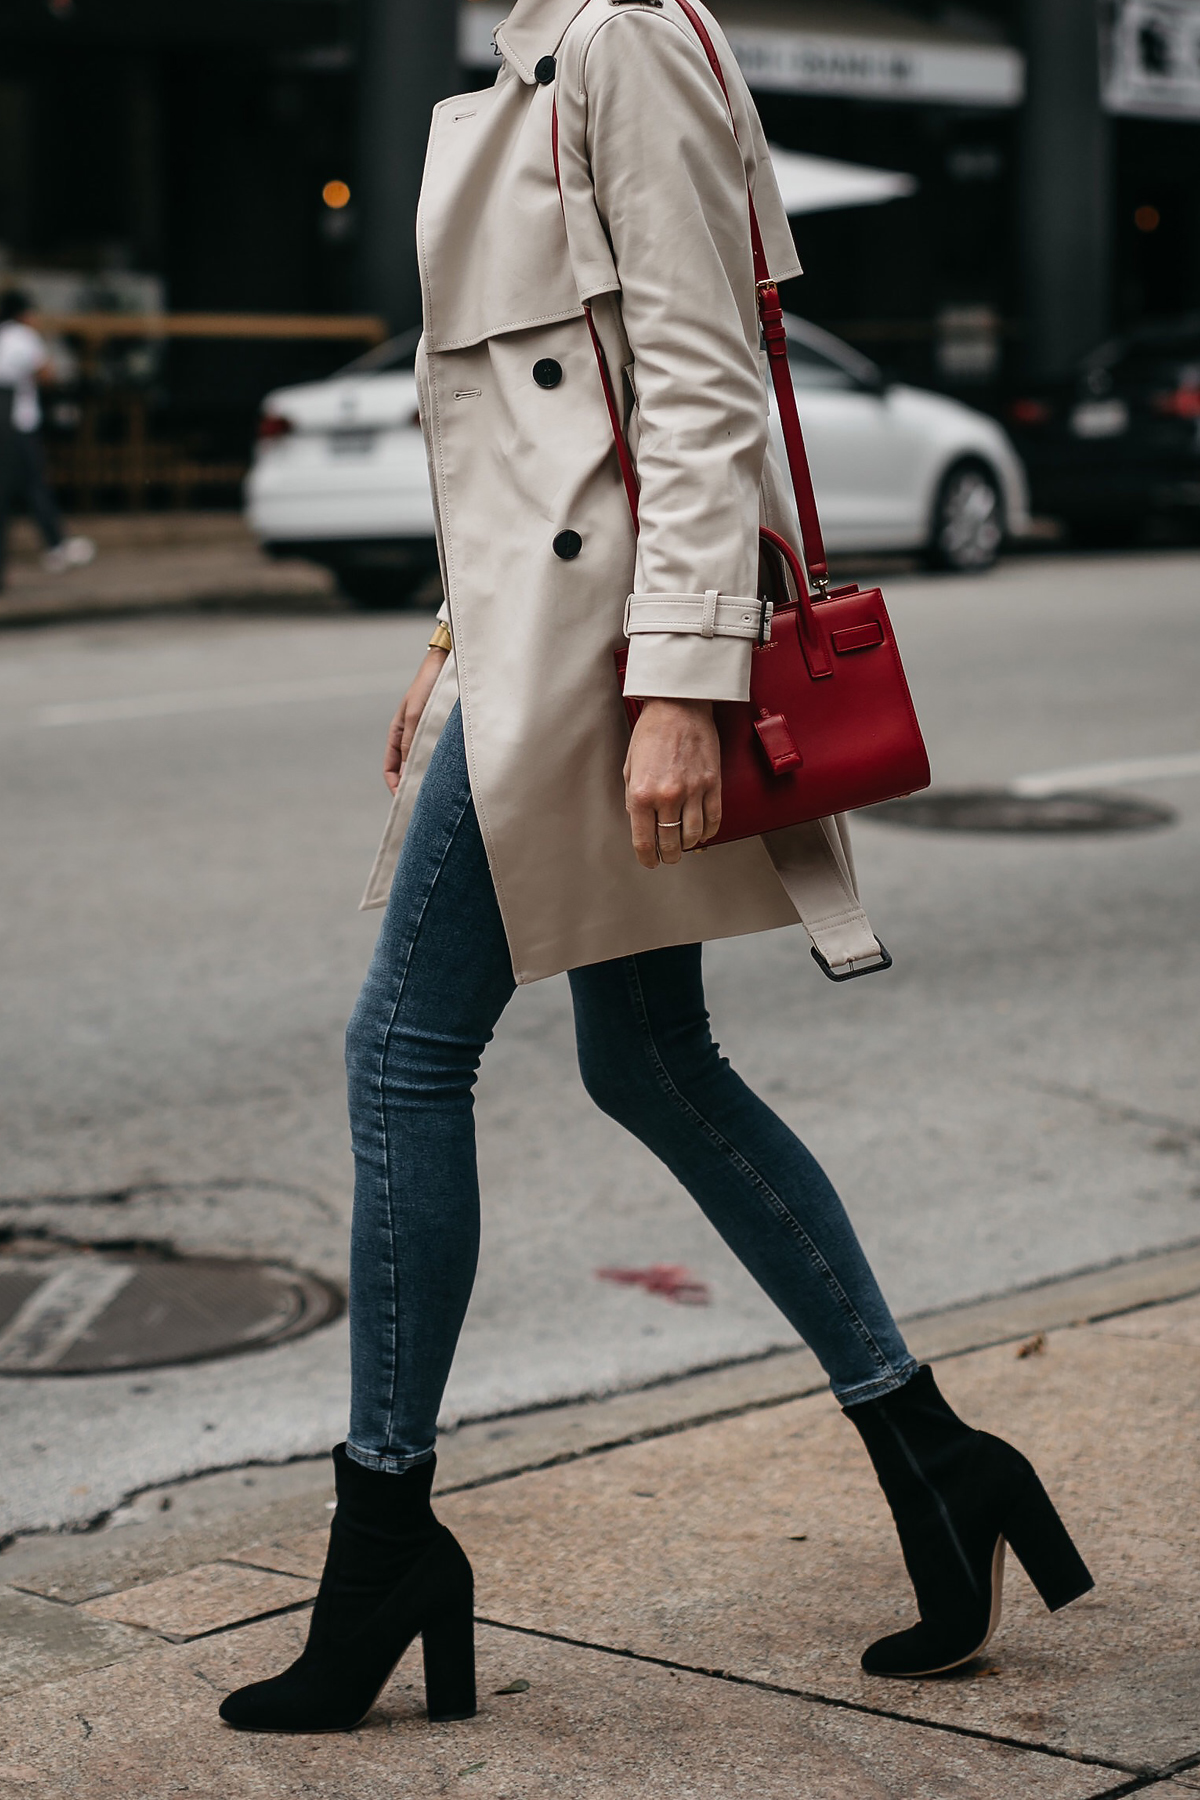 Fashion Jackson Club Monaco Trench Coat Denim Skinny Jeans Black Ankle Booties Saint Laurent Sac De Jour Red 1